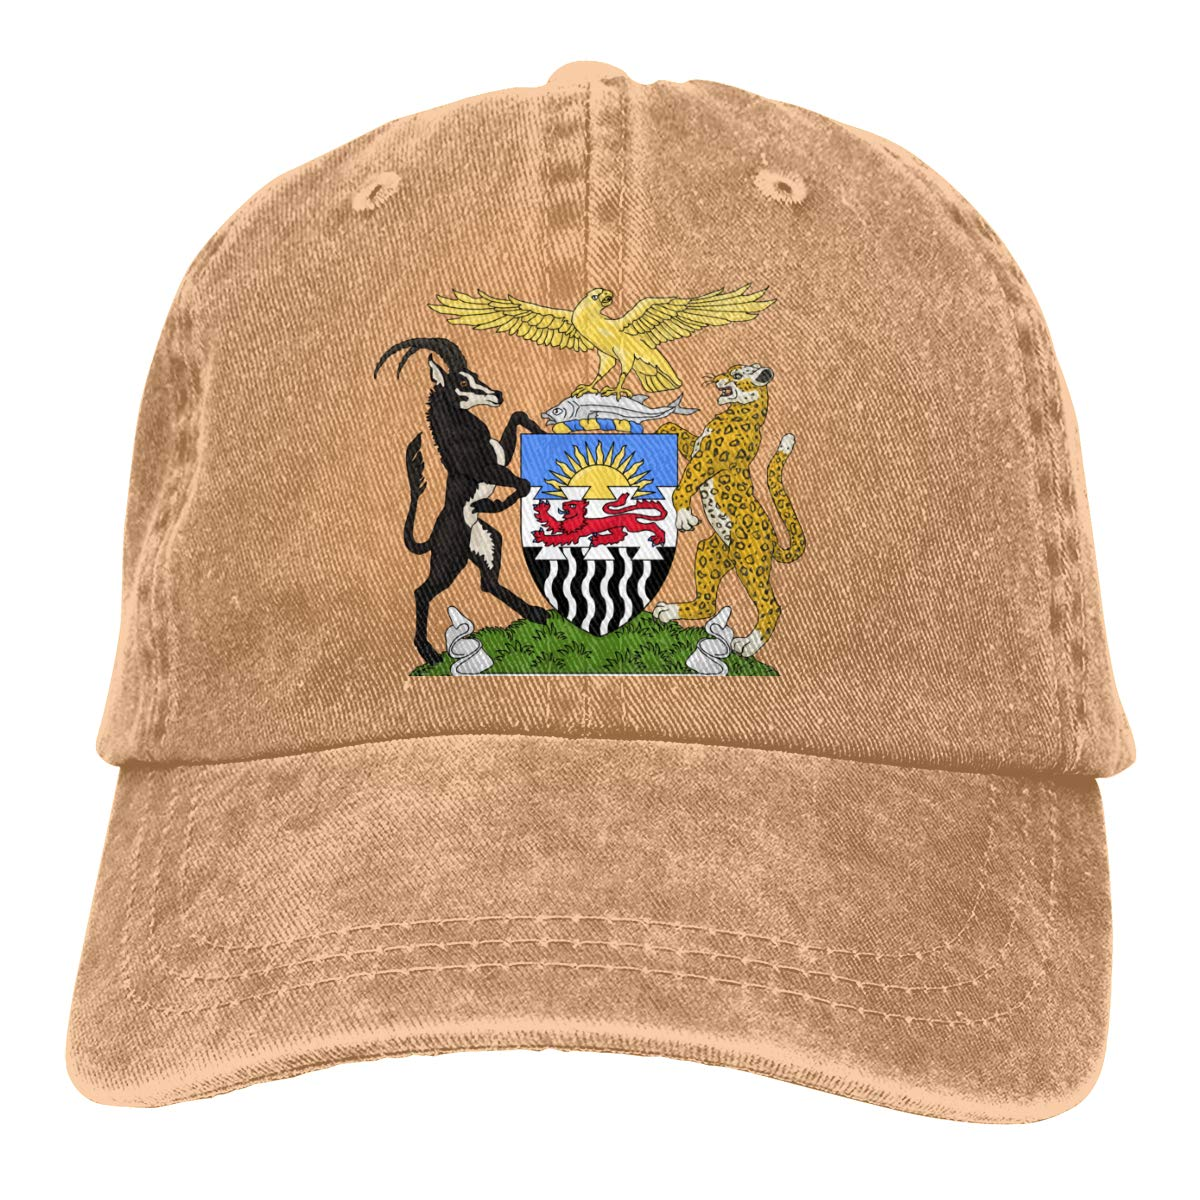 KioHp Coat of Arms of The Federation of Rhodesia and Nyasaland Classic Plain Unisex Vintage Great Baseball Cap Fit Outdoor Activities Quick Drying Low Profile Hat